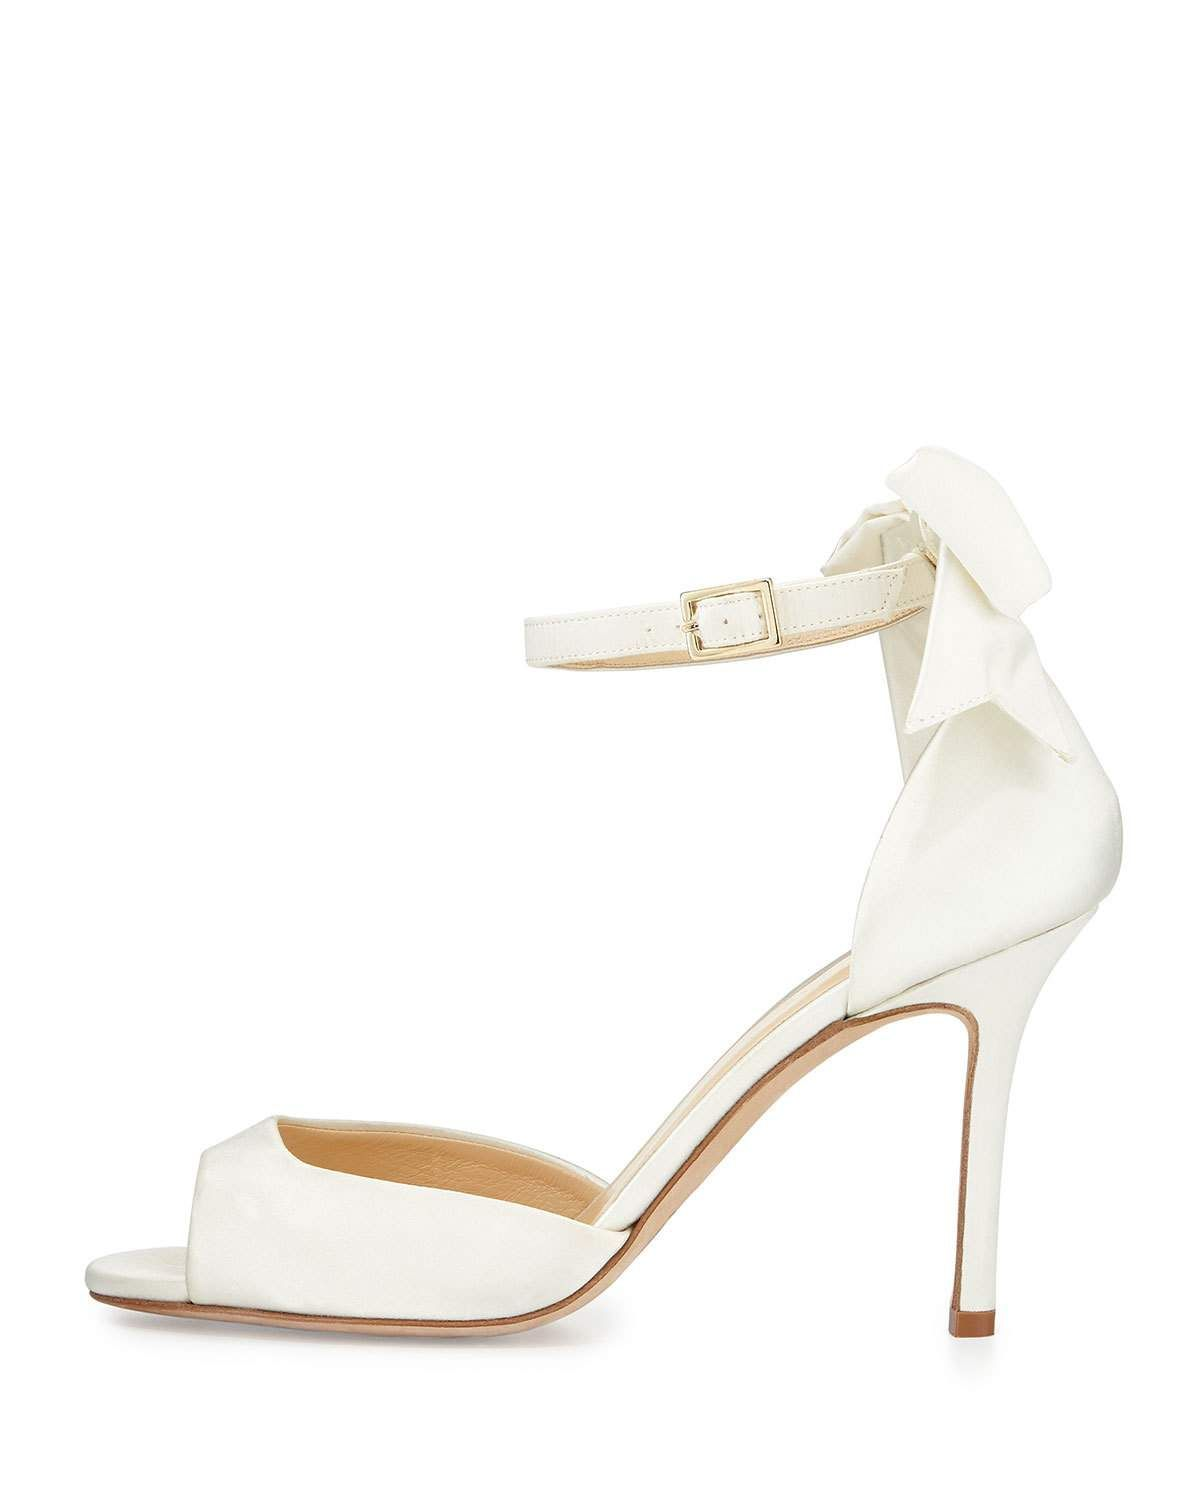 e7ba588c8b Izzie bow-back satin d'orsay pumps ivory | Products | Bow back ...